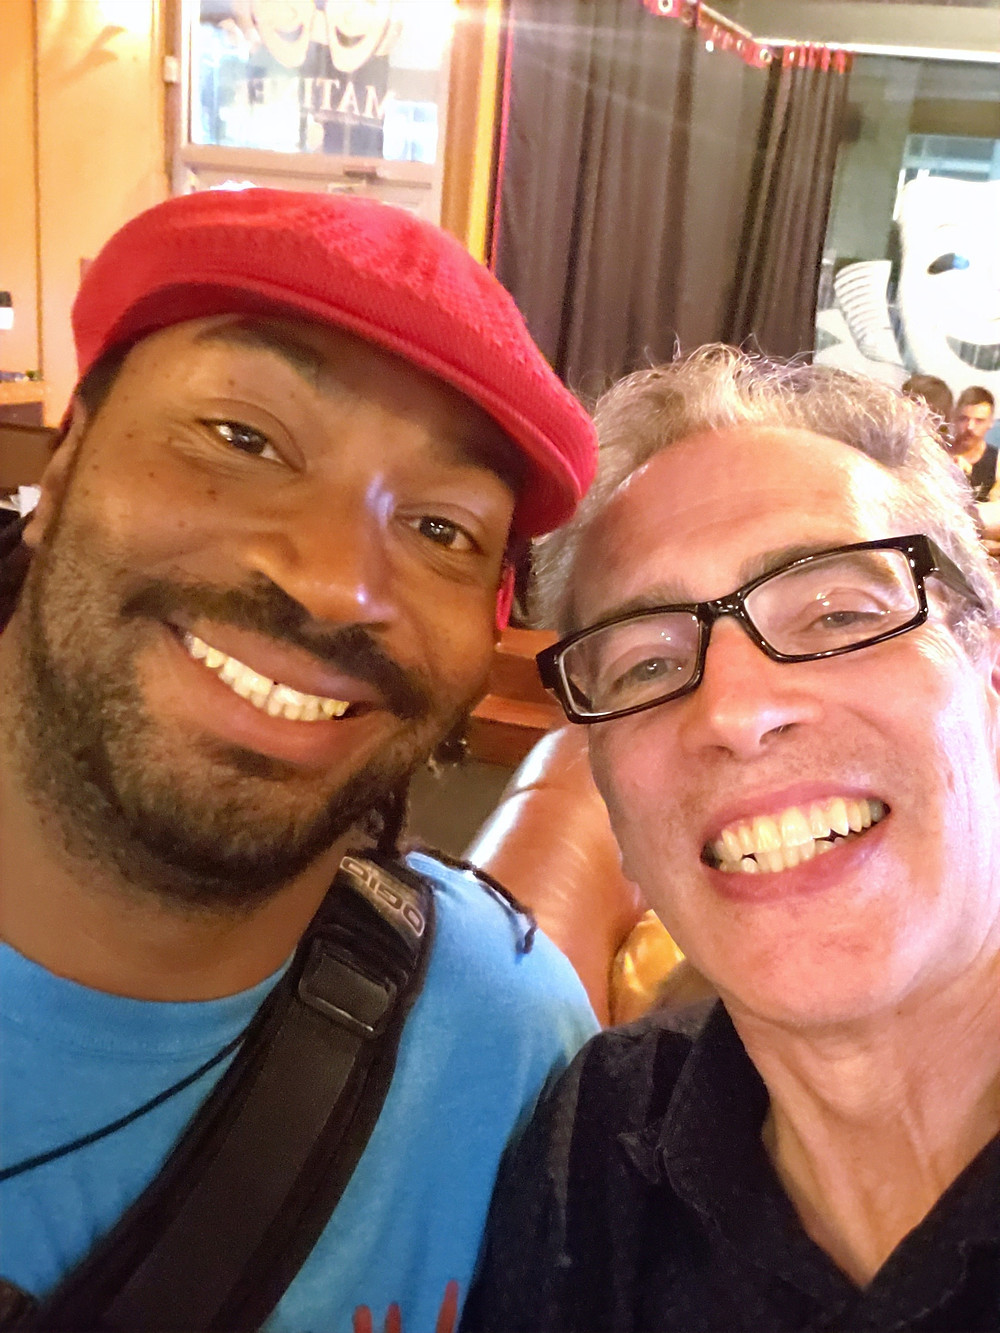 two men smile for the camera in a selfie